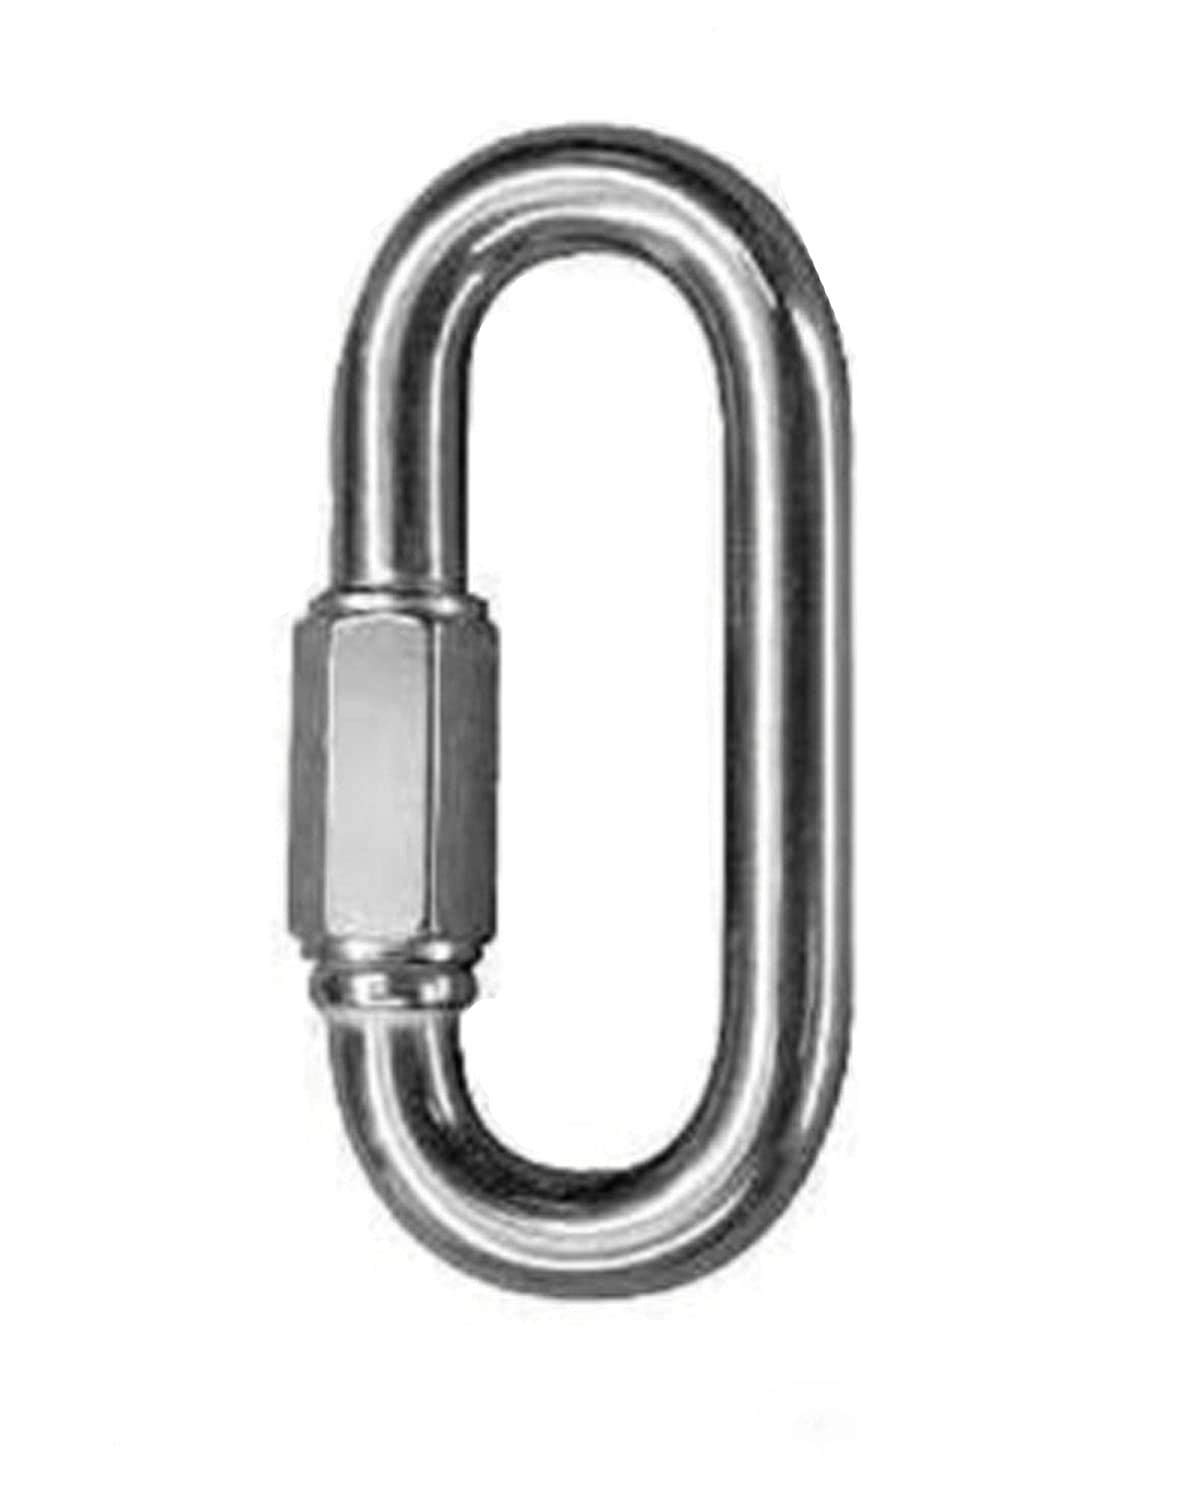 5 Sizes O-Shape Stainless Steel Oval Screw Lock Carabiner Quick Hook Keychain CS